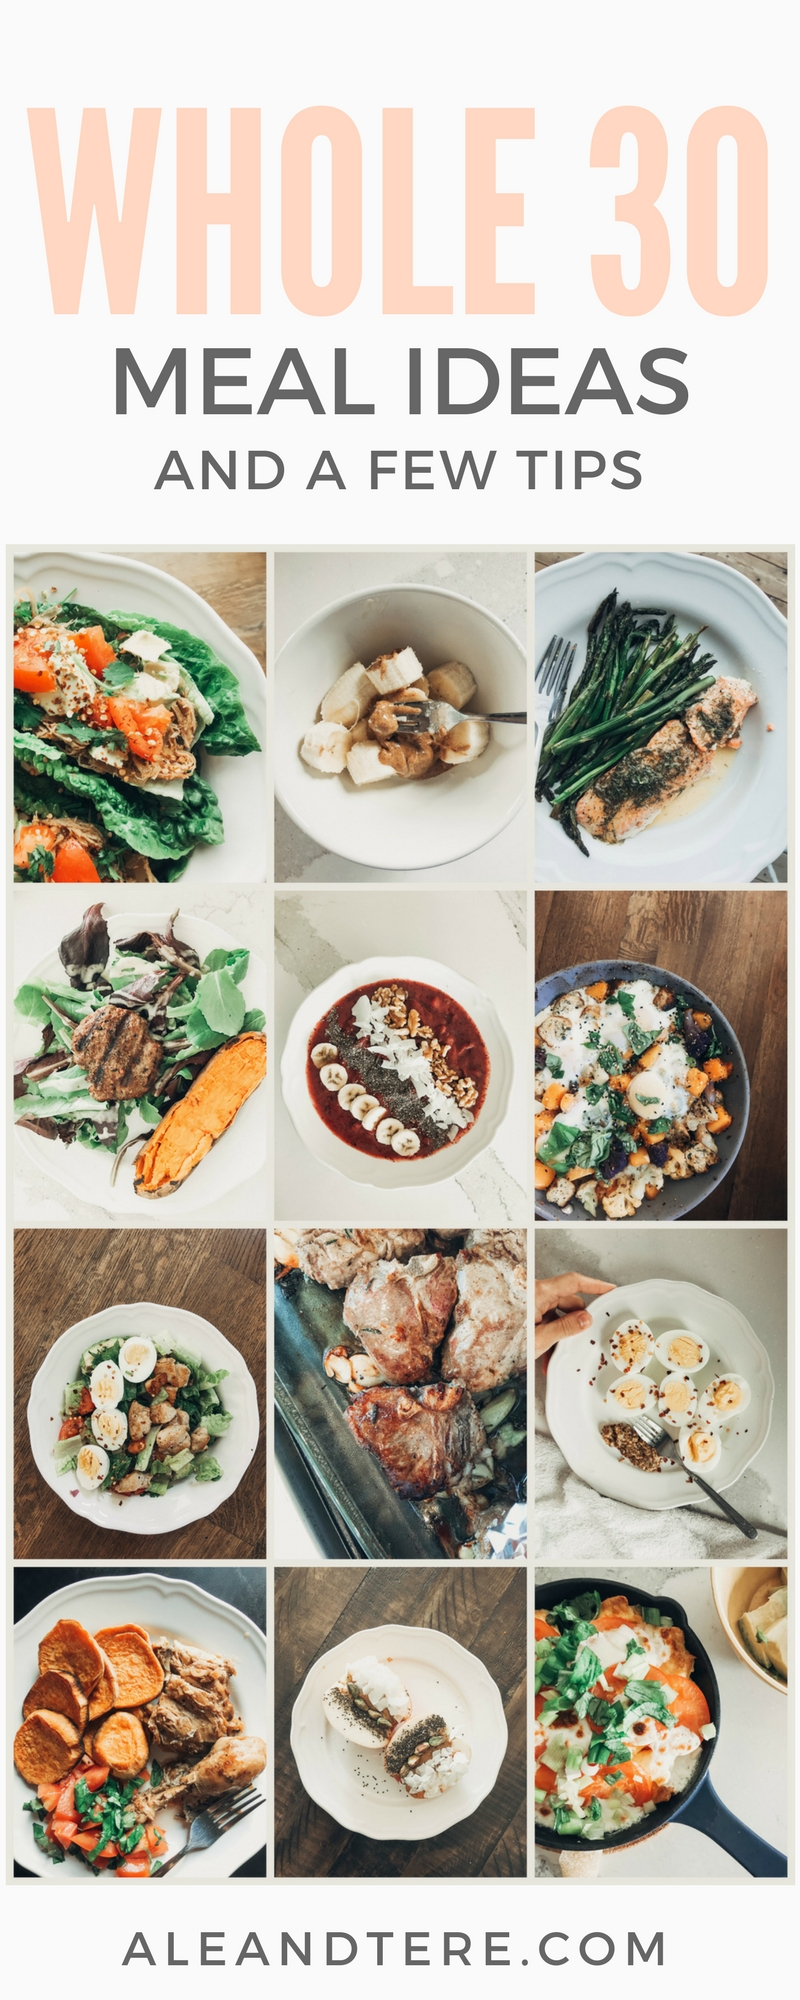 Whole 30 journey ale tere a lifestyle blog and follow along our instagram at withlovetere for more tips and videos to help you on your whole 30 journey forumfinder Image collections